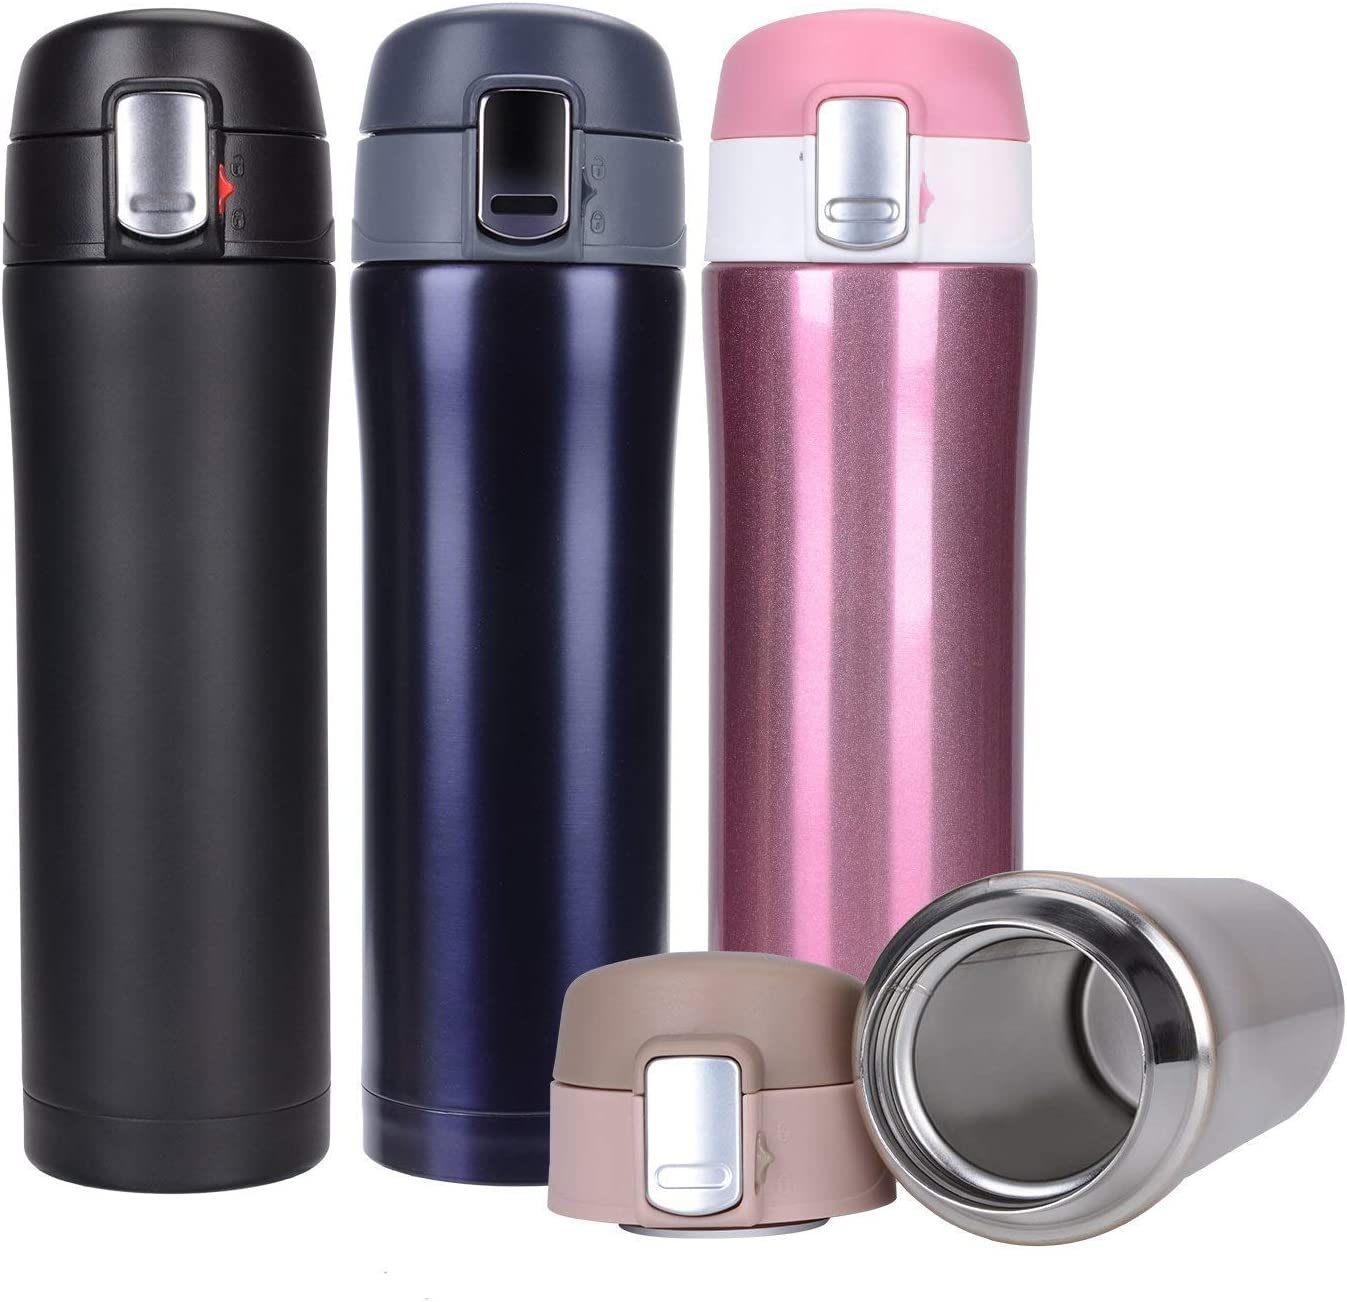 Hiwill Double Walled Vacuum Insulated Travel Coffee Mug, Stainless Steel Flask, Sports Water Bottle, One Hand Open (Classic Violet)